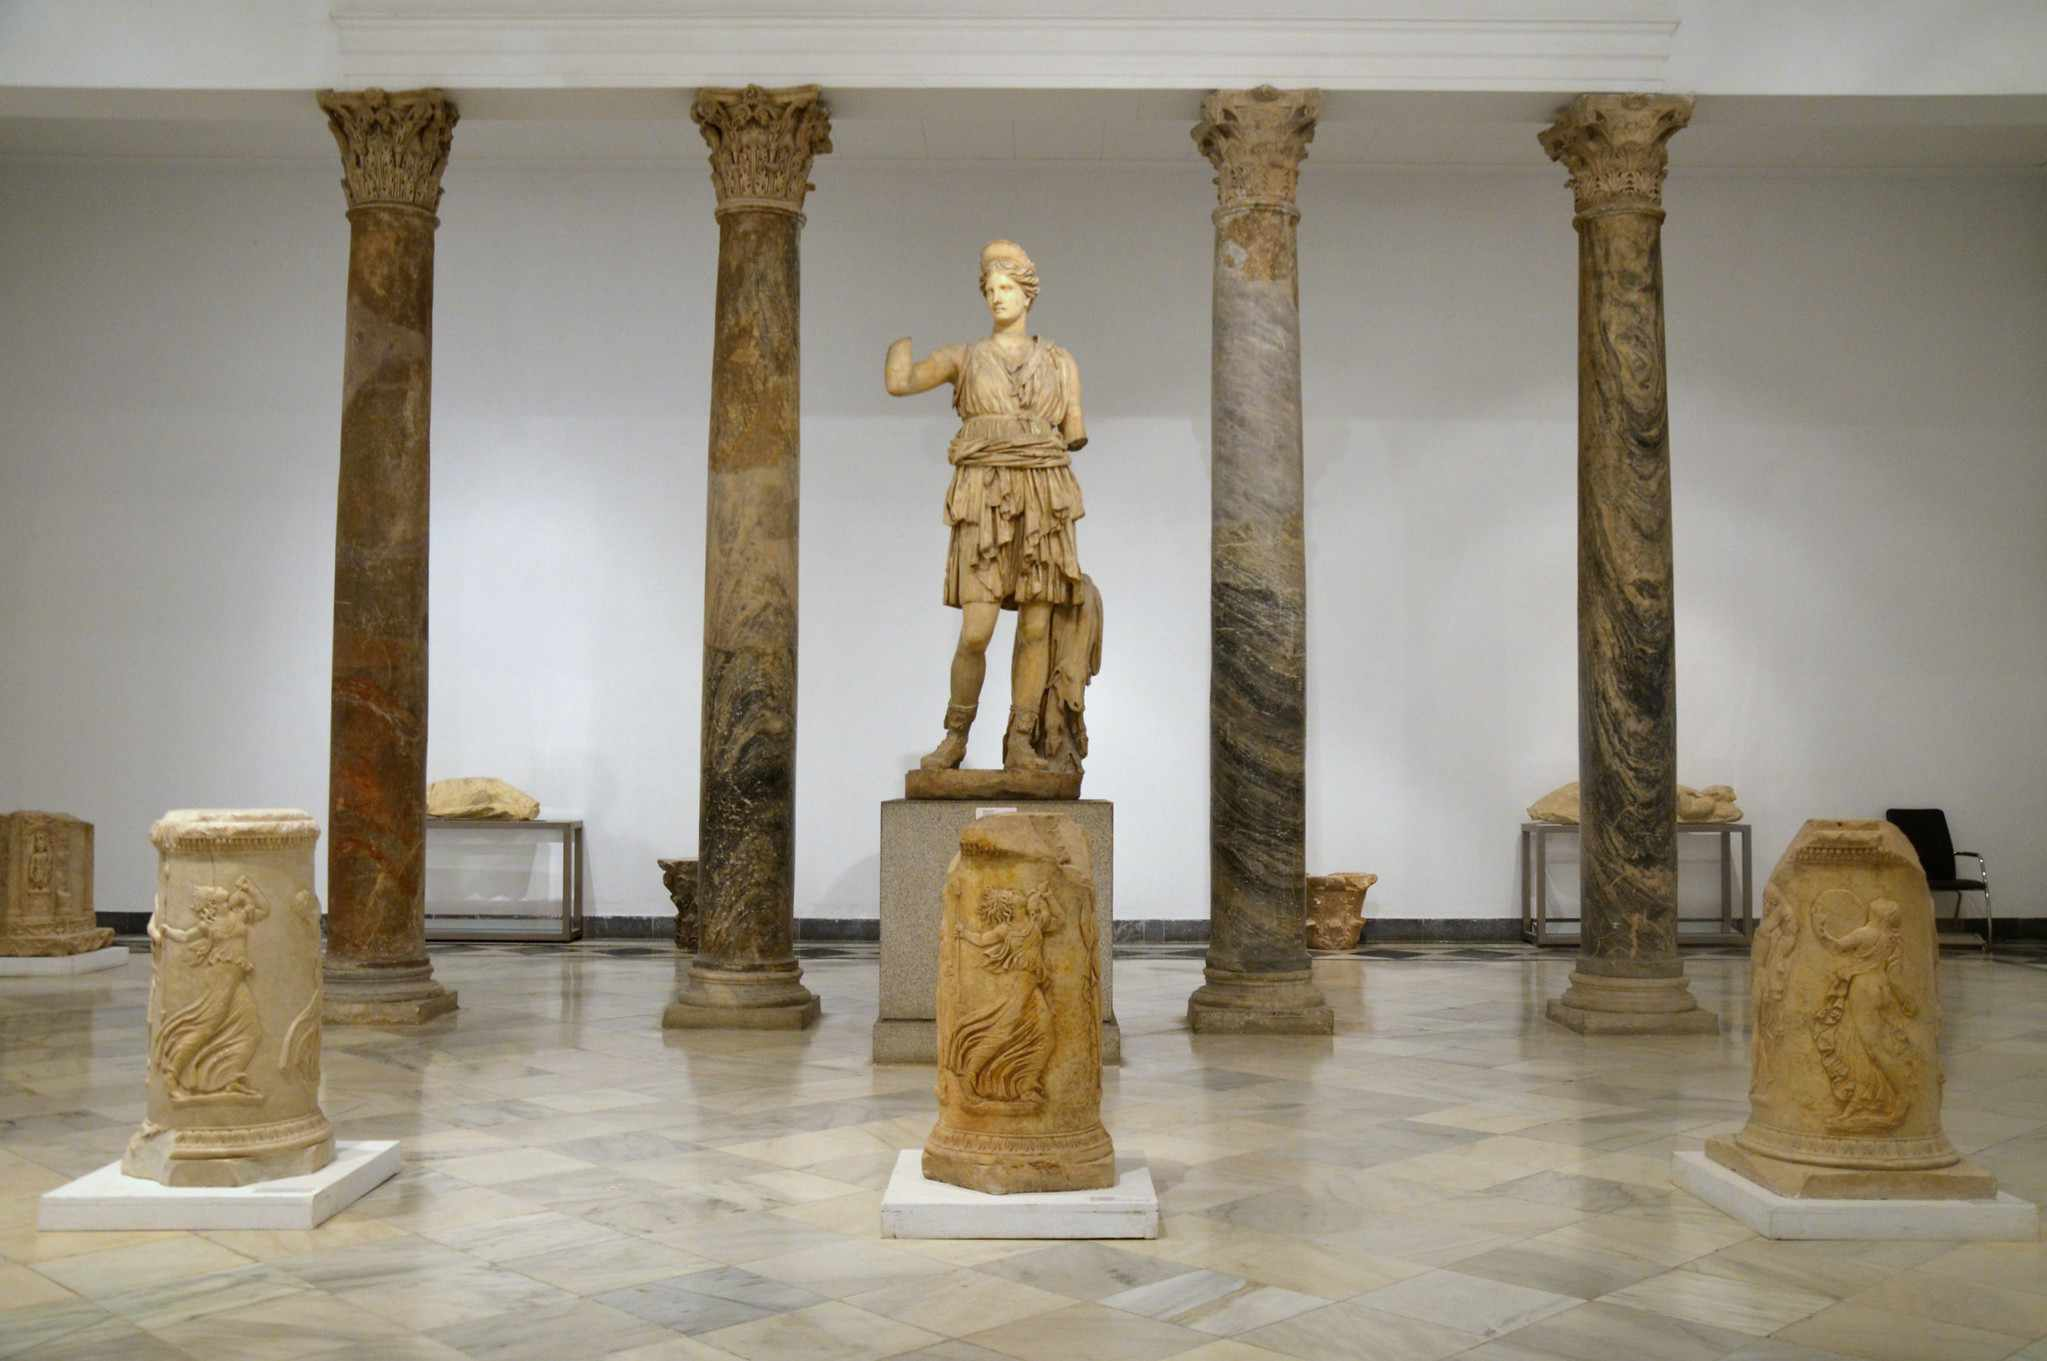 Statue of Diana, 2nd century AD